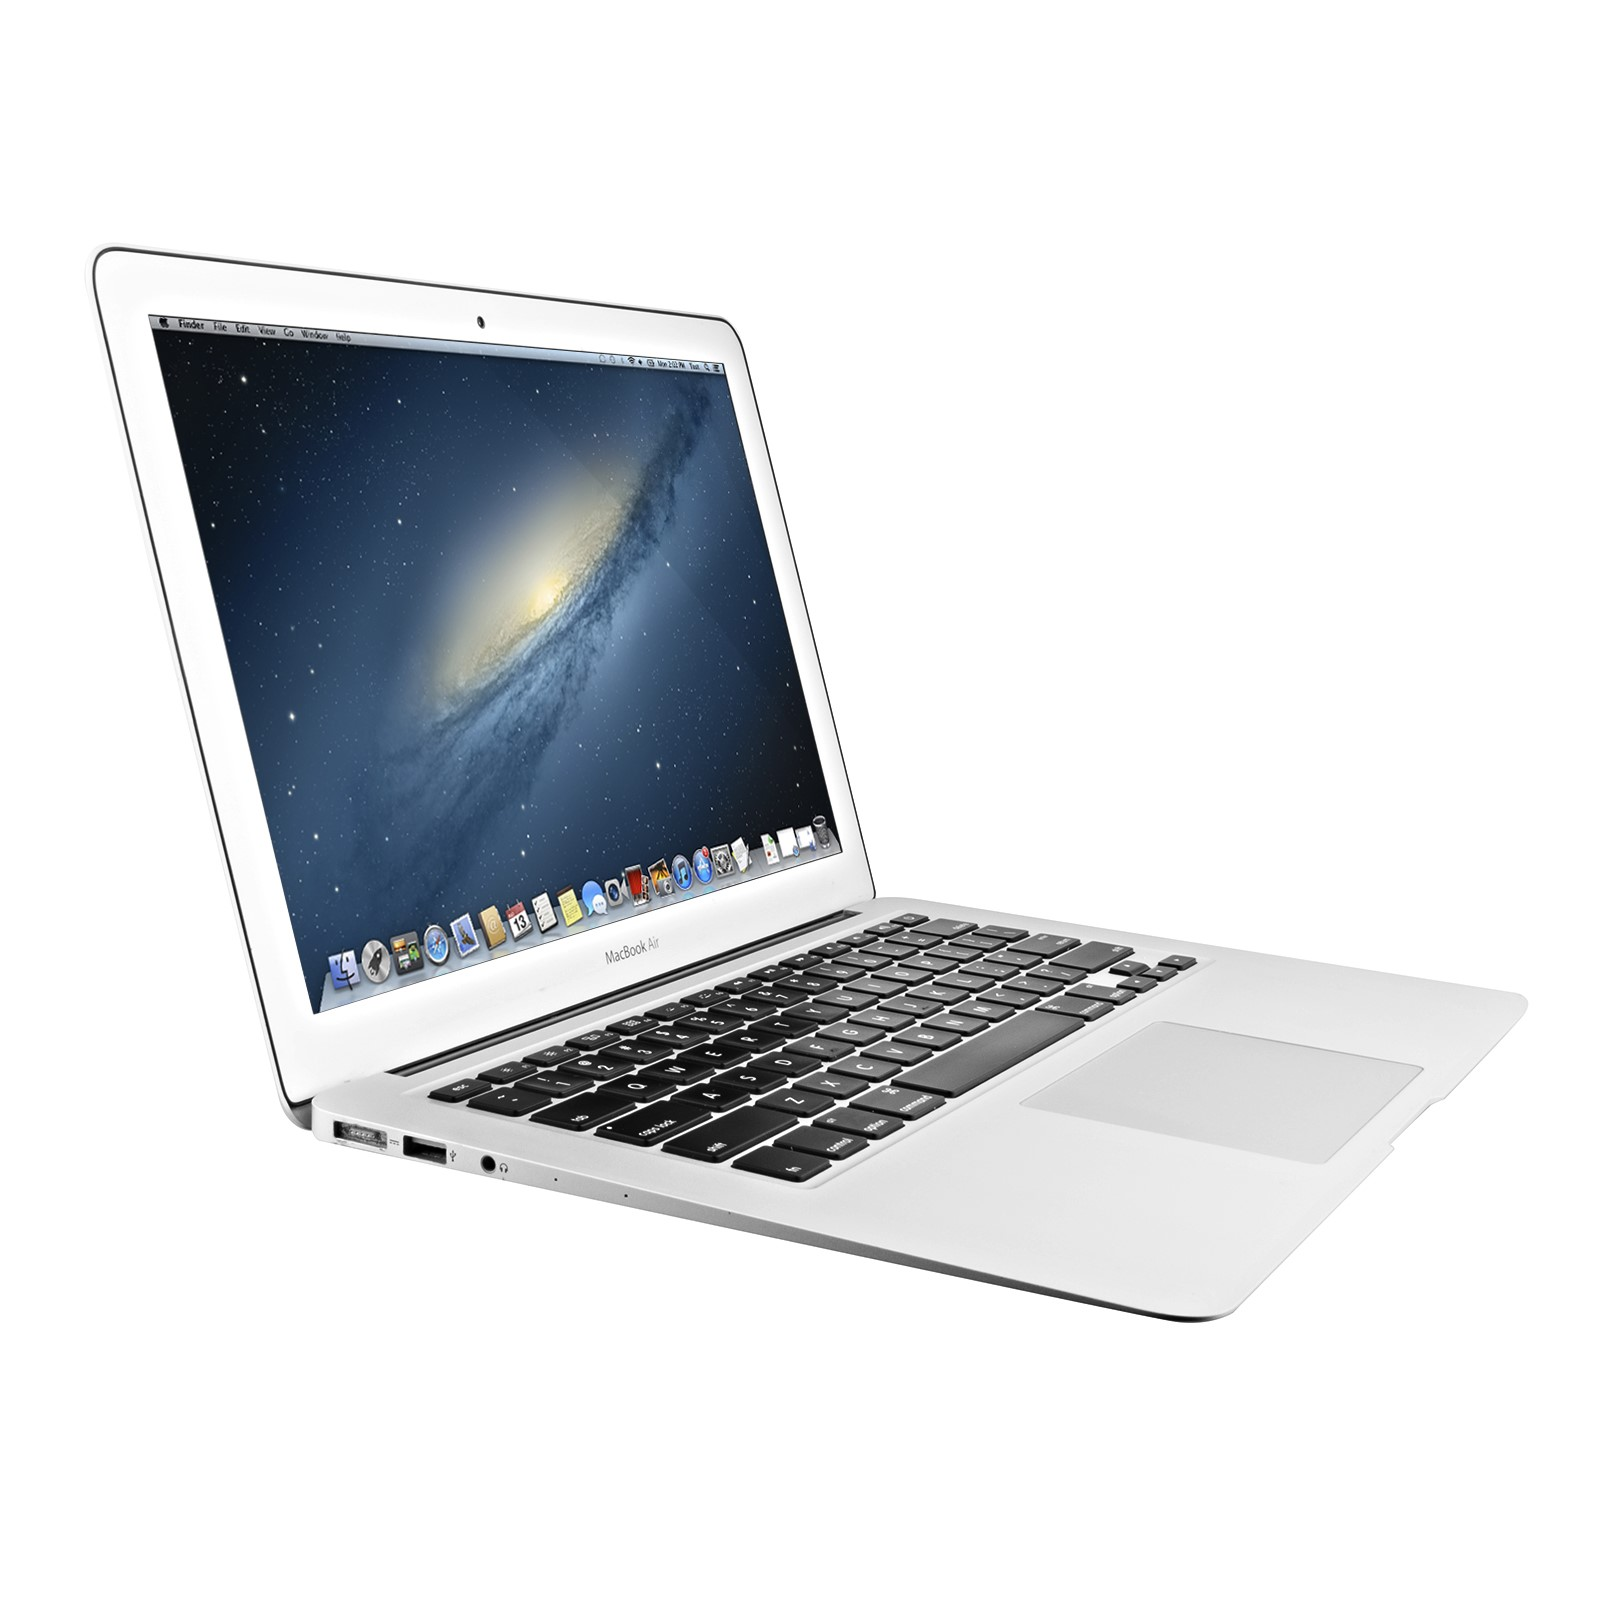 apple macbook air 13 1 3 ghz 128 gb ssd 4gb yosemite md760ll a ebay. Black Bedroom Furniture Sets. Home Design Ideas